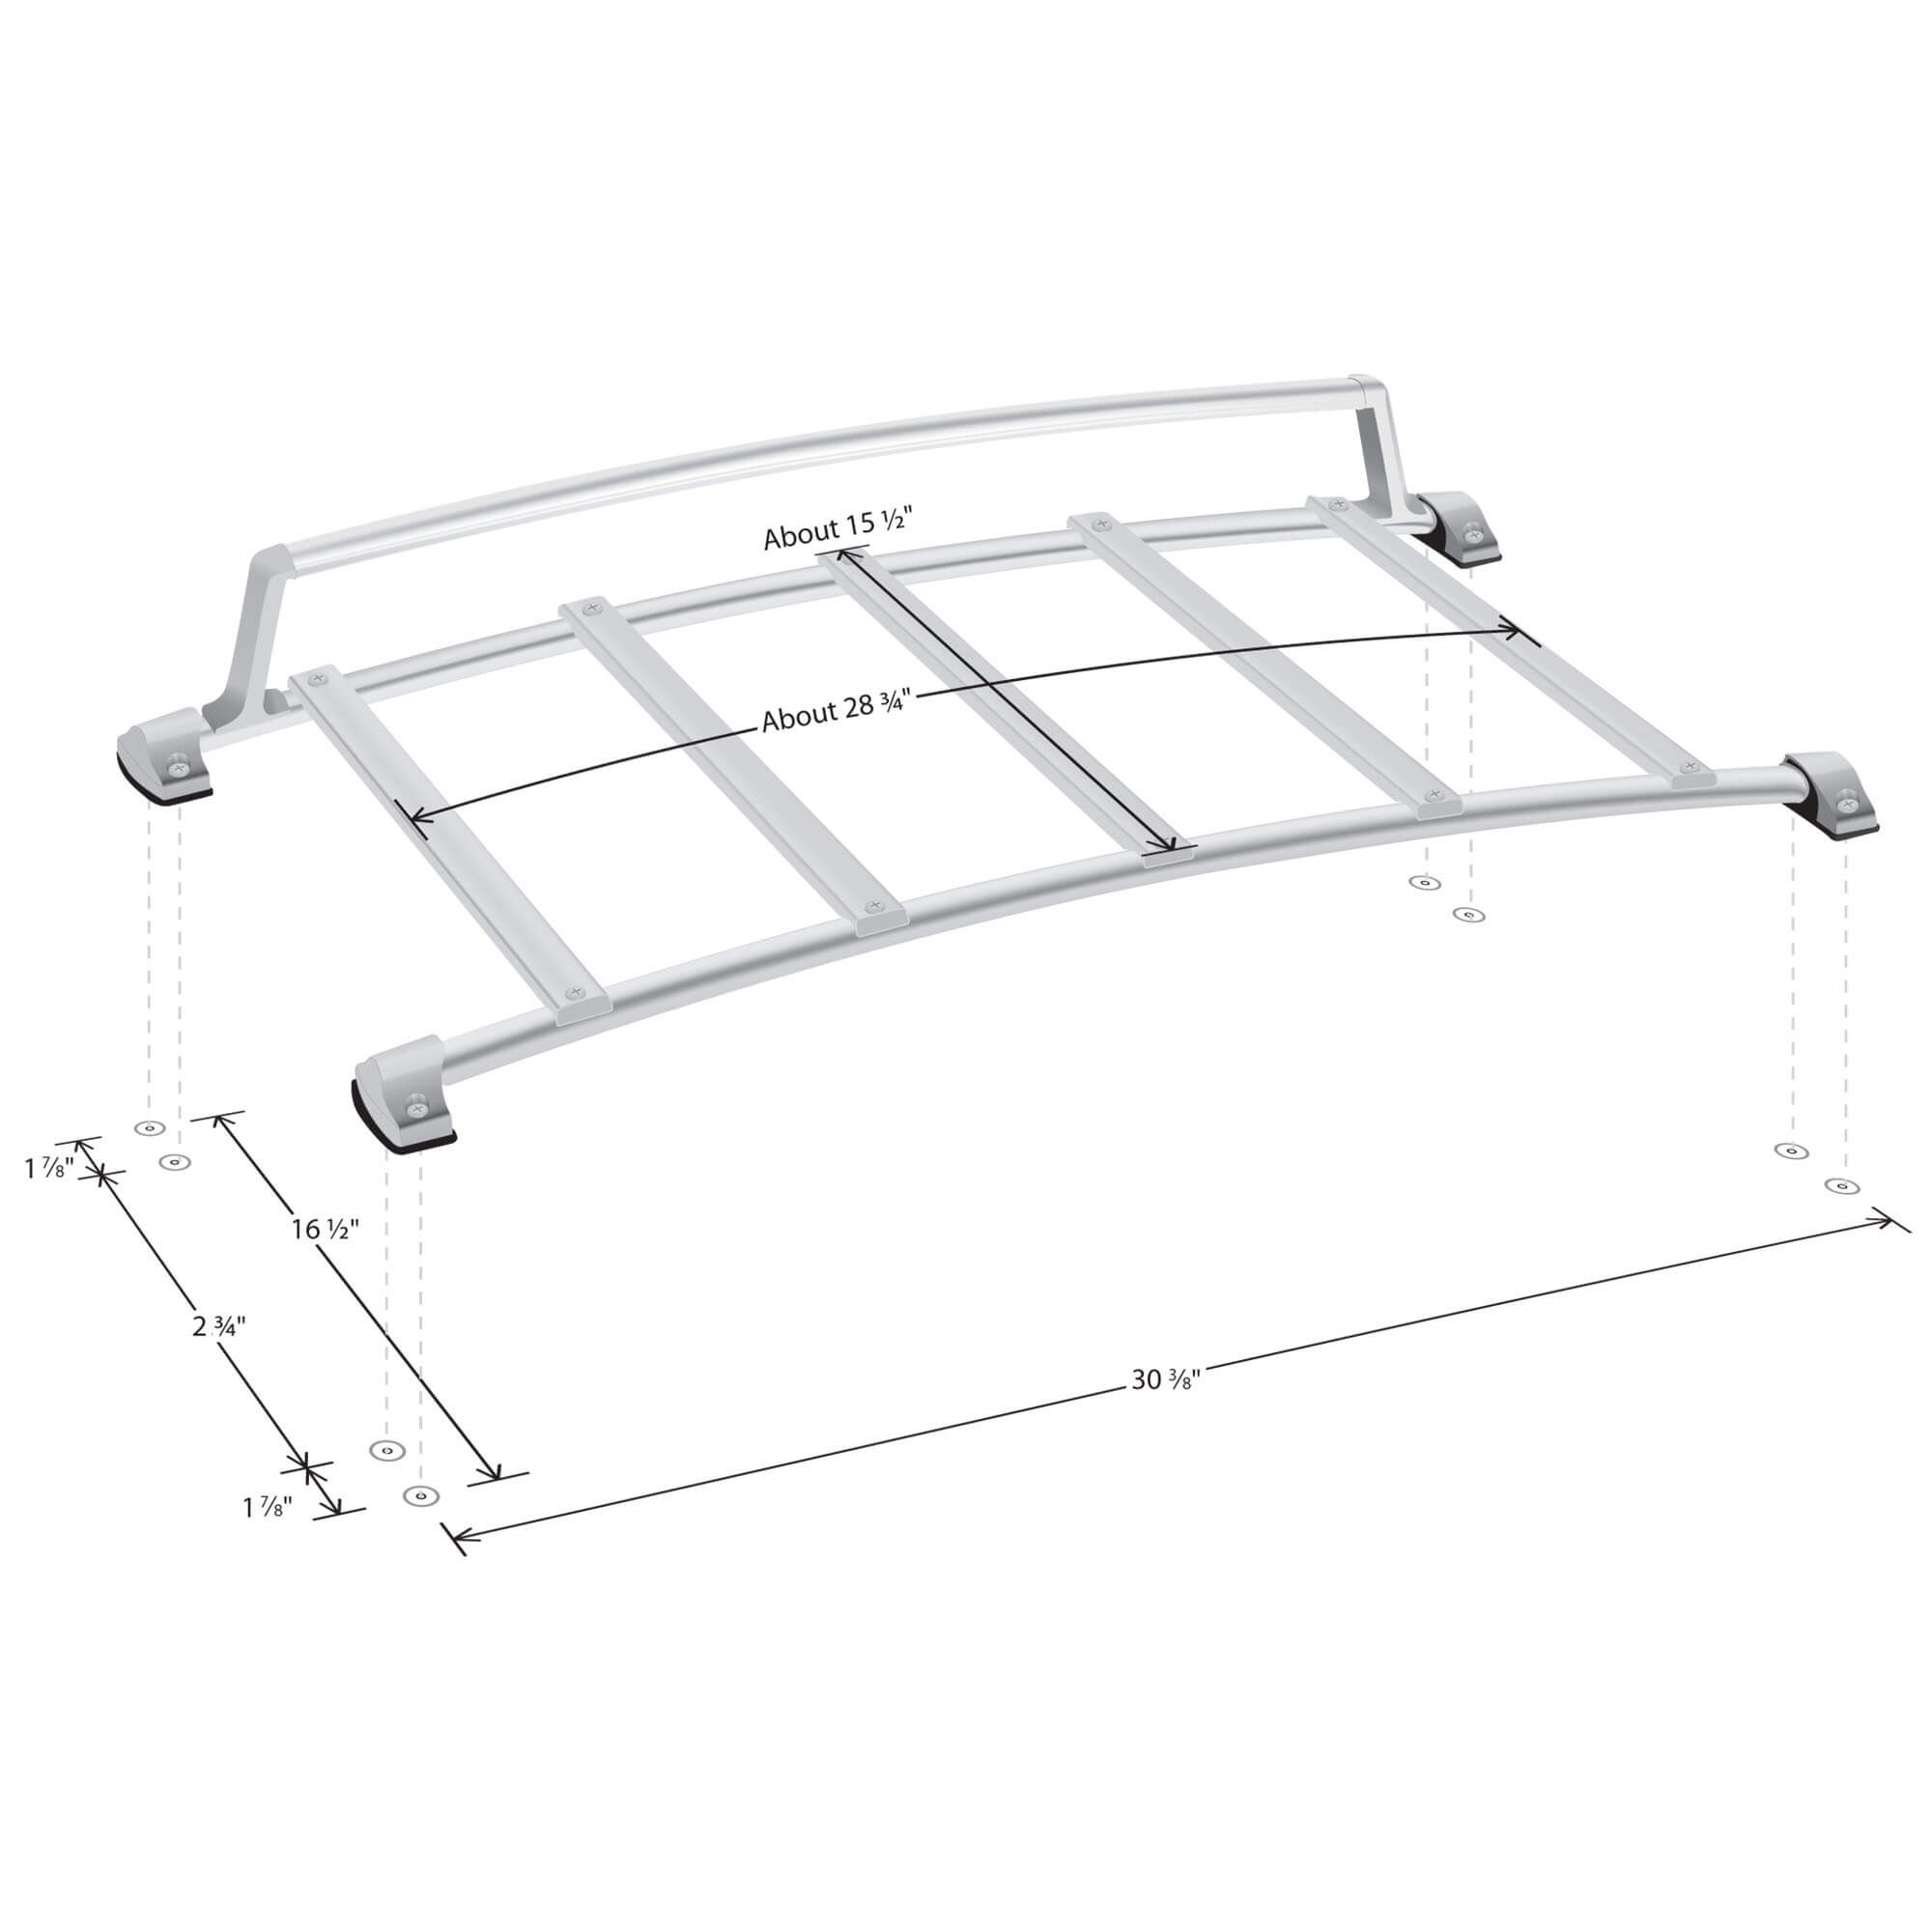 Luggage Rack Factory Option Reproduction on Spitfire Triumph Gt6 For Sale